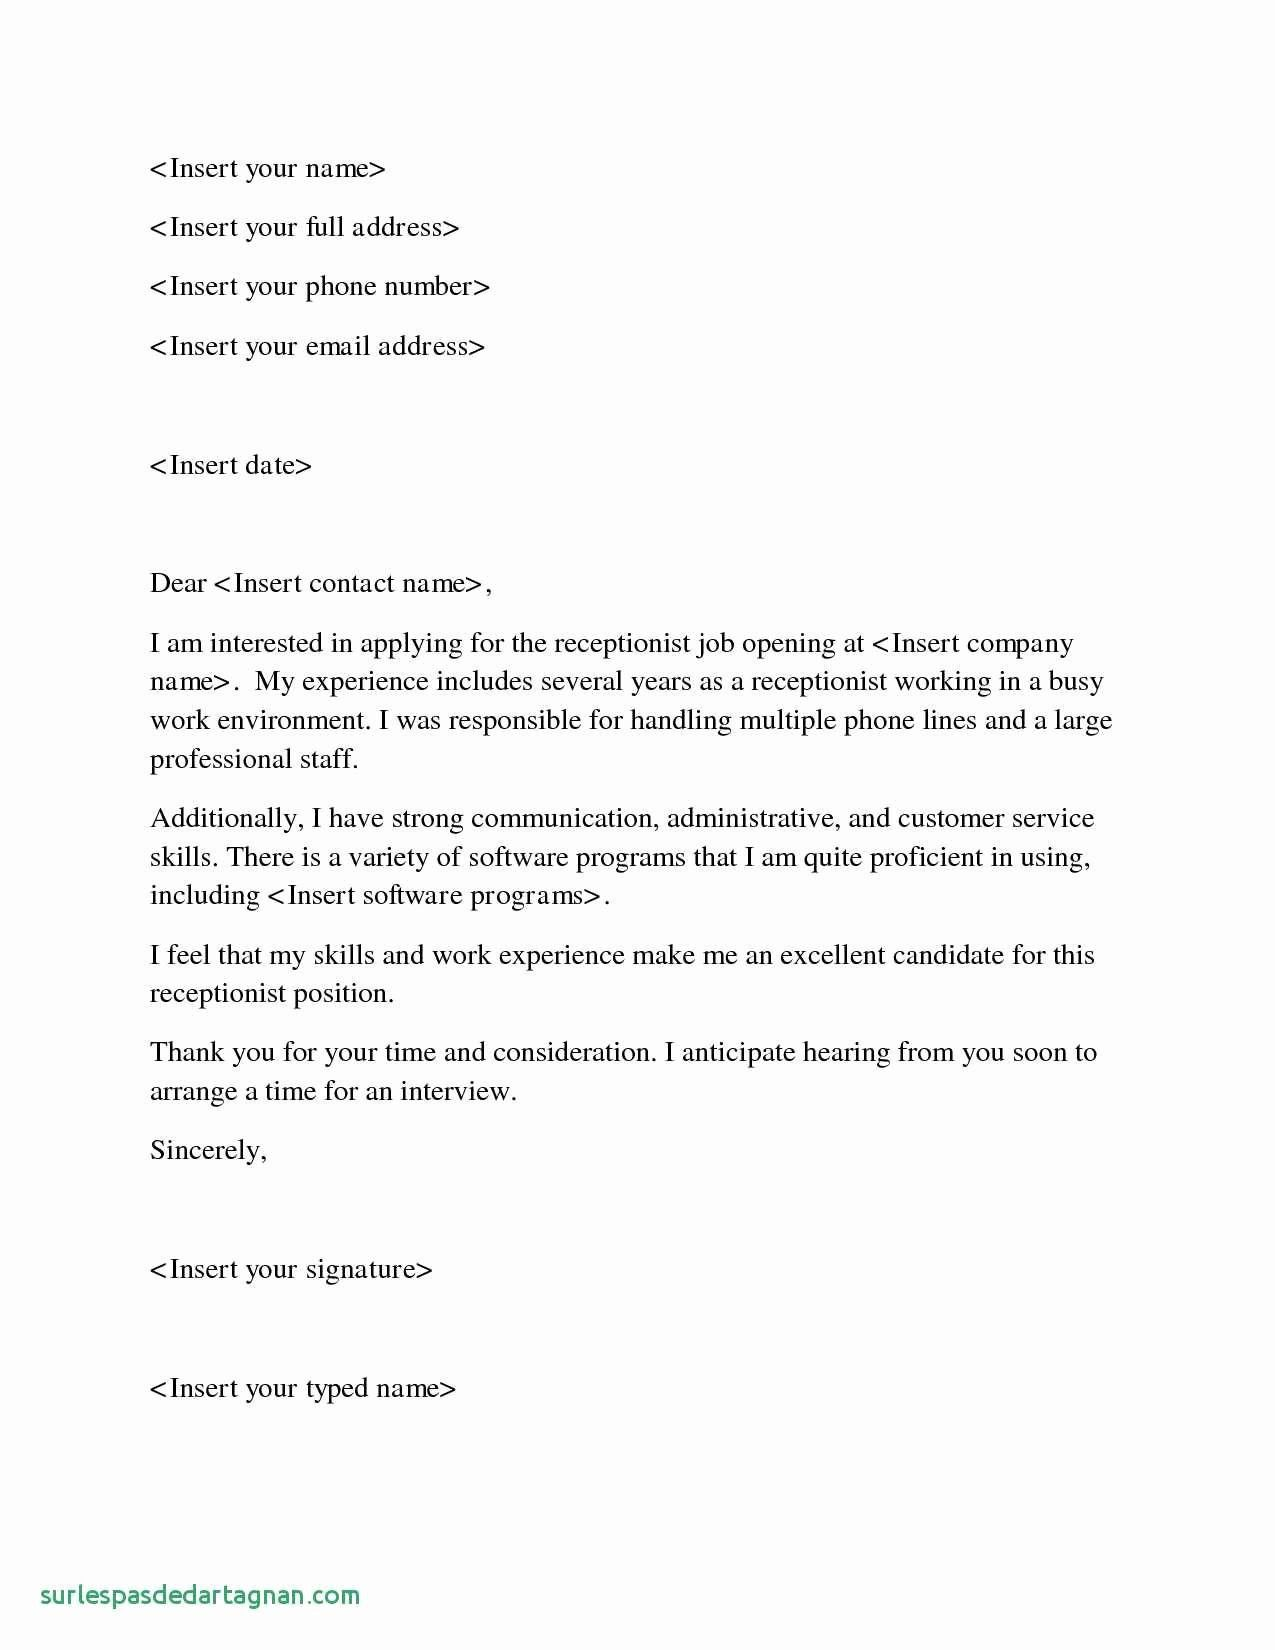 26 Medical Receptionist Cover Letter Sample Doctors Inspirationa